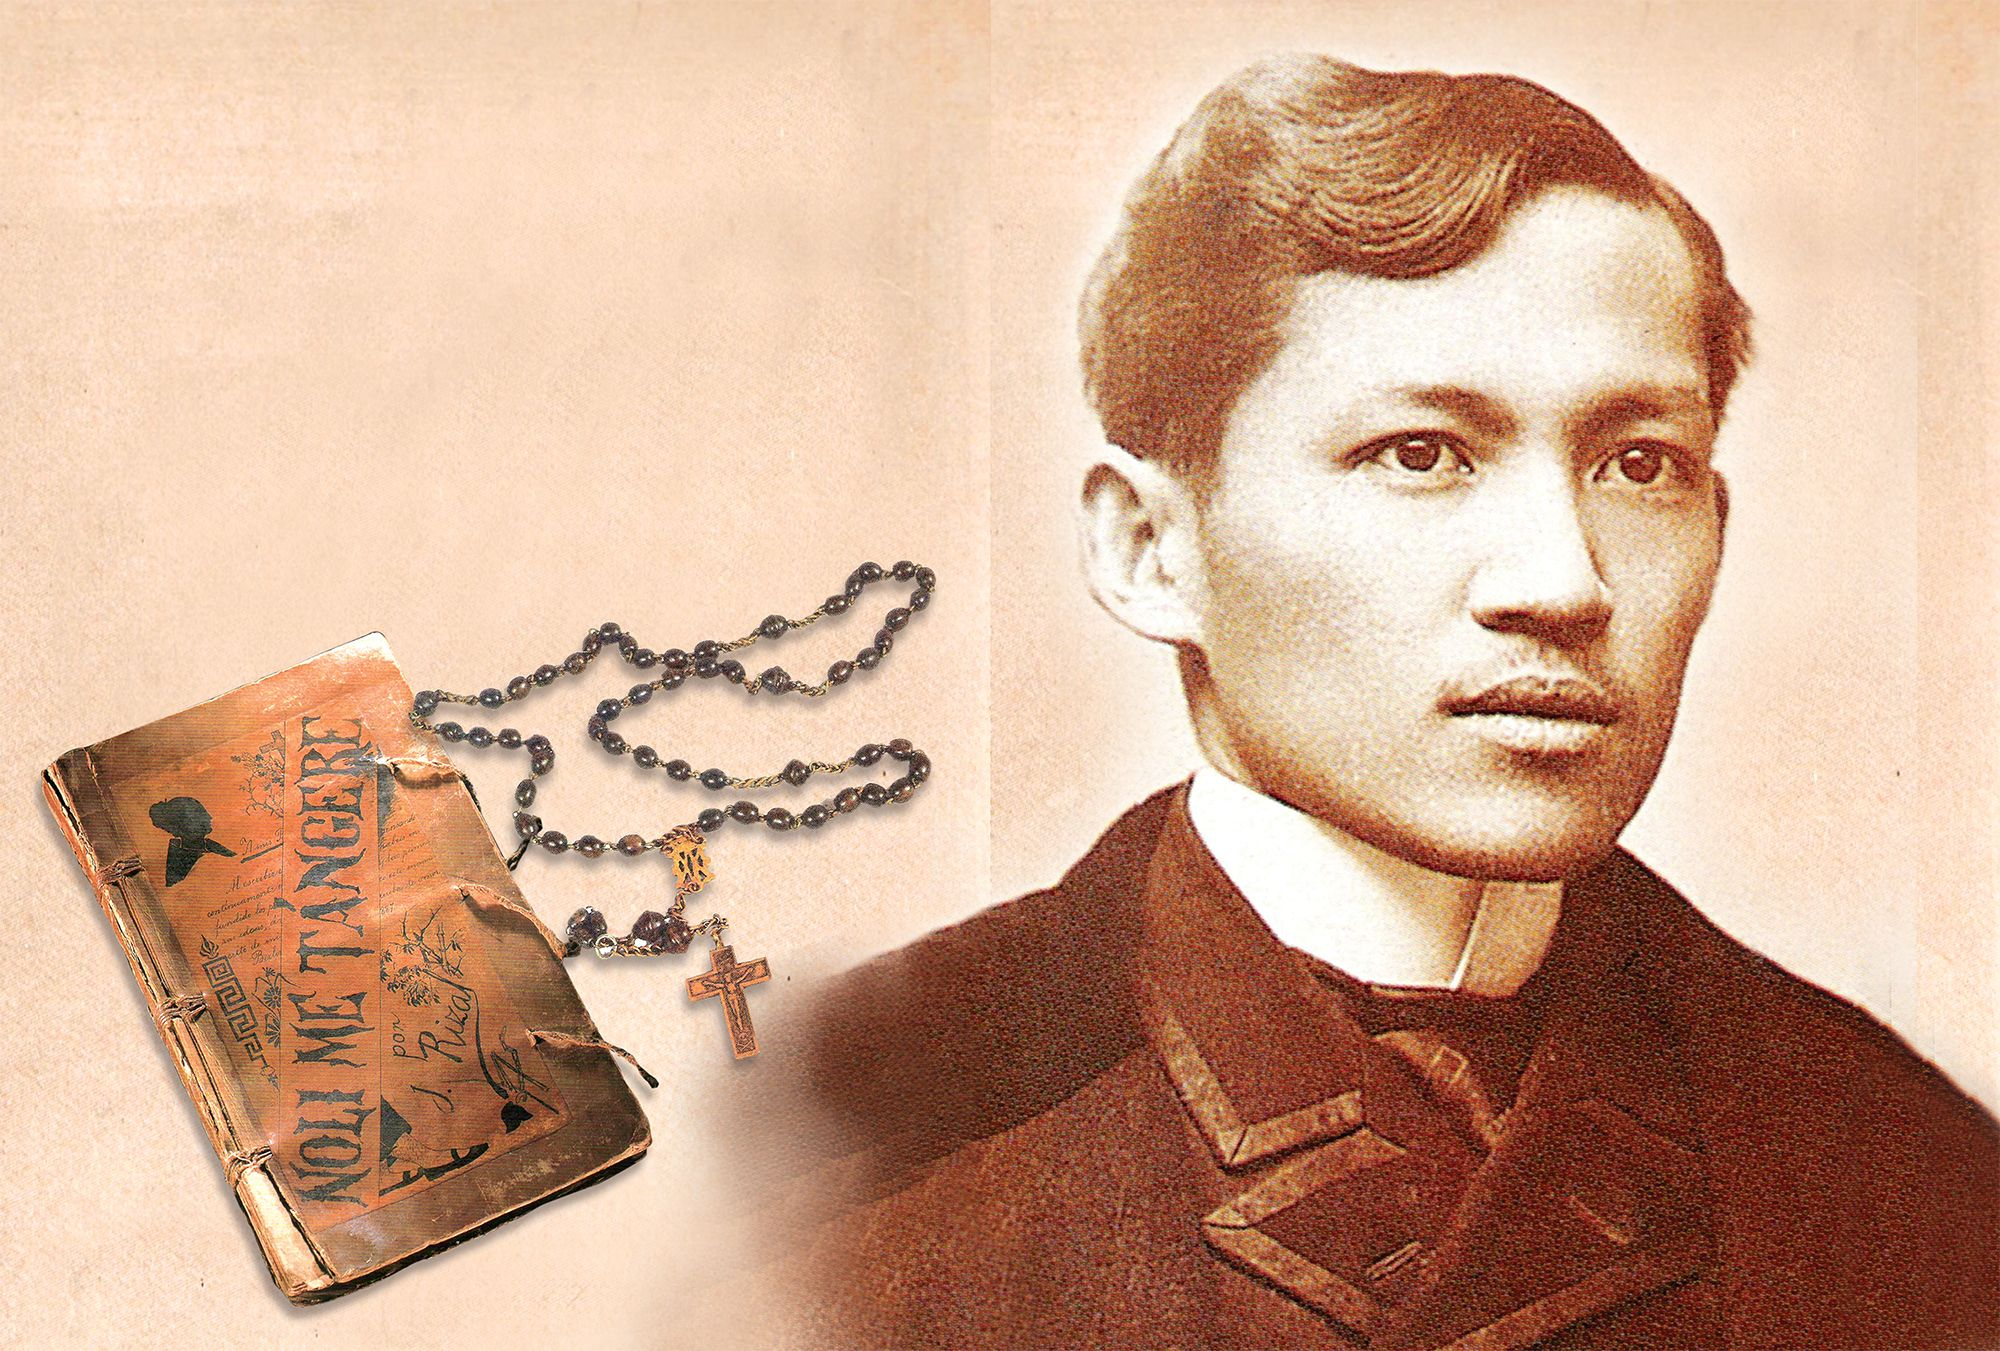 A Closer Look On The More Human Side Of The National Hero of the Philippines, Dr Jose Rizal